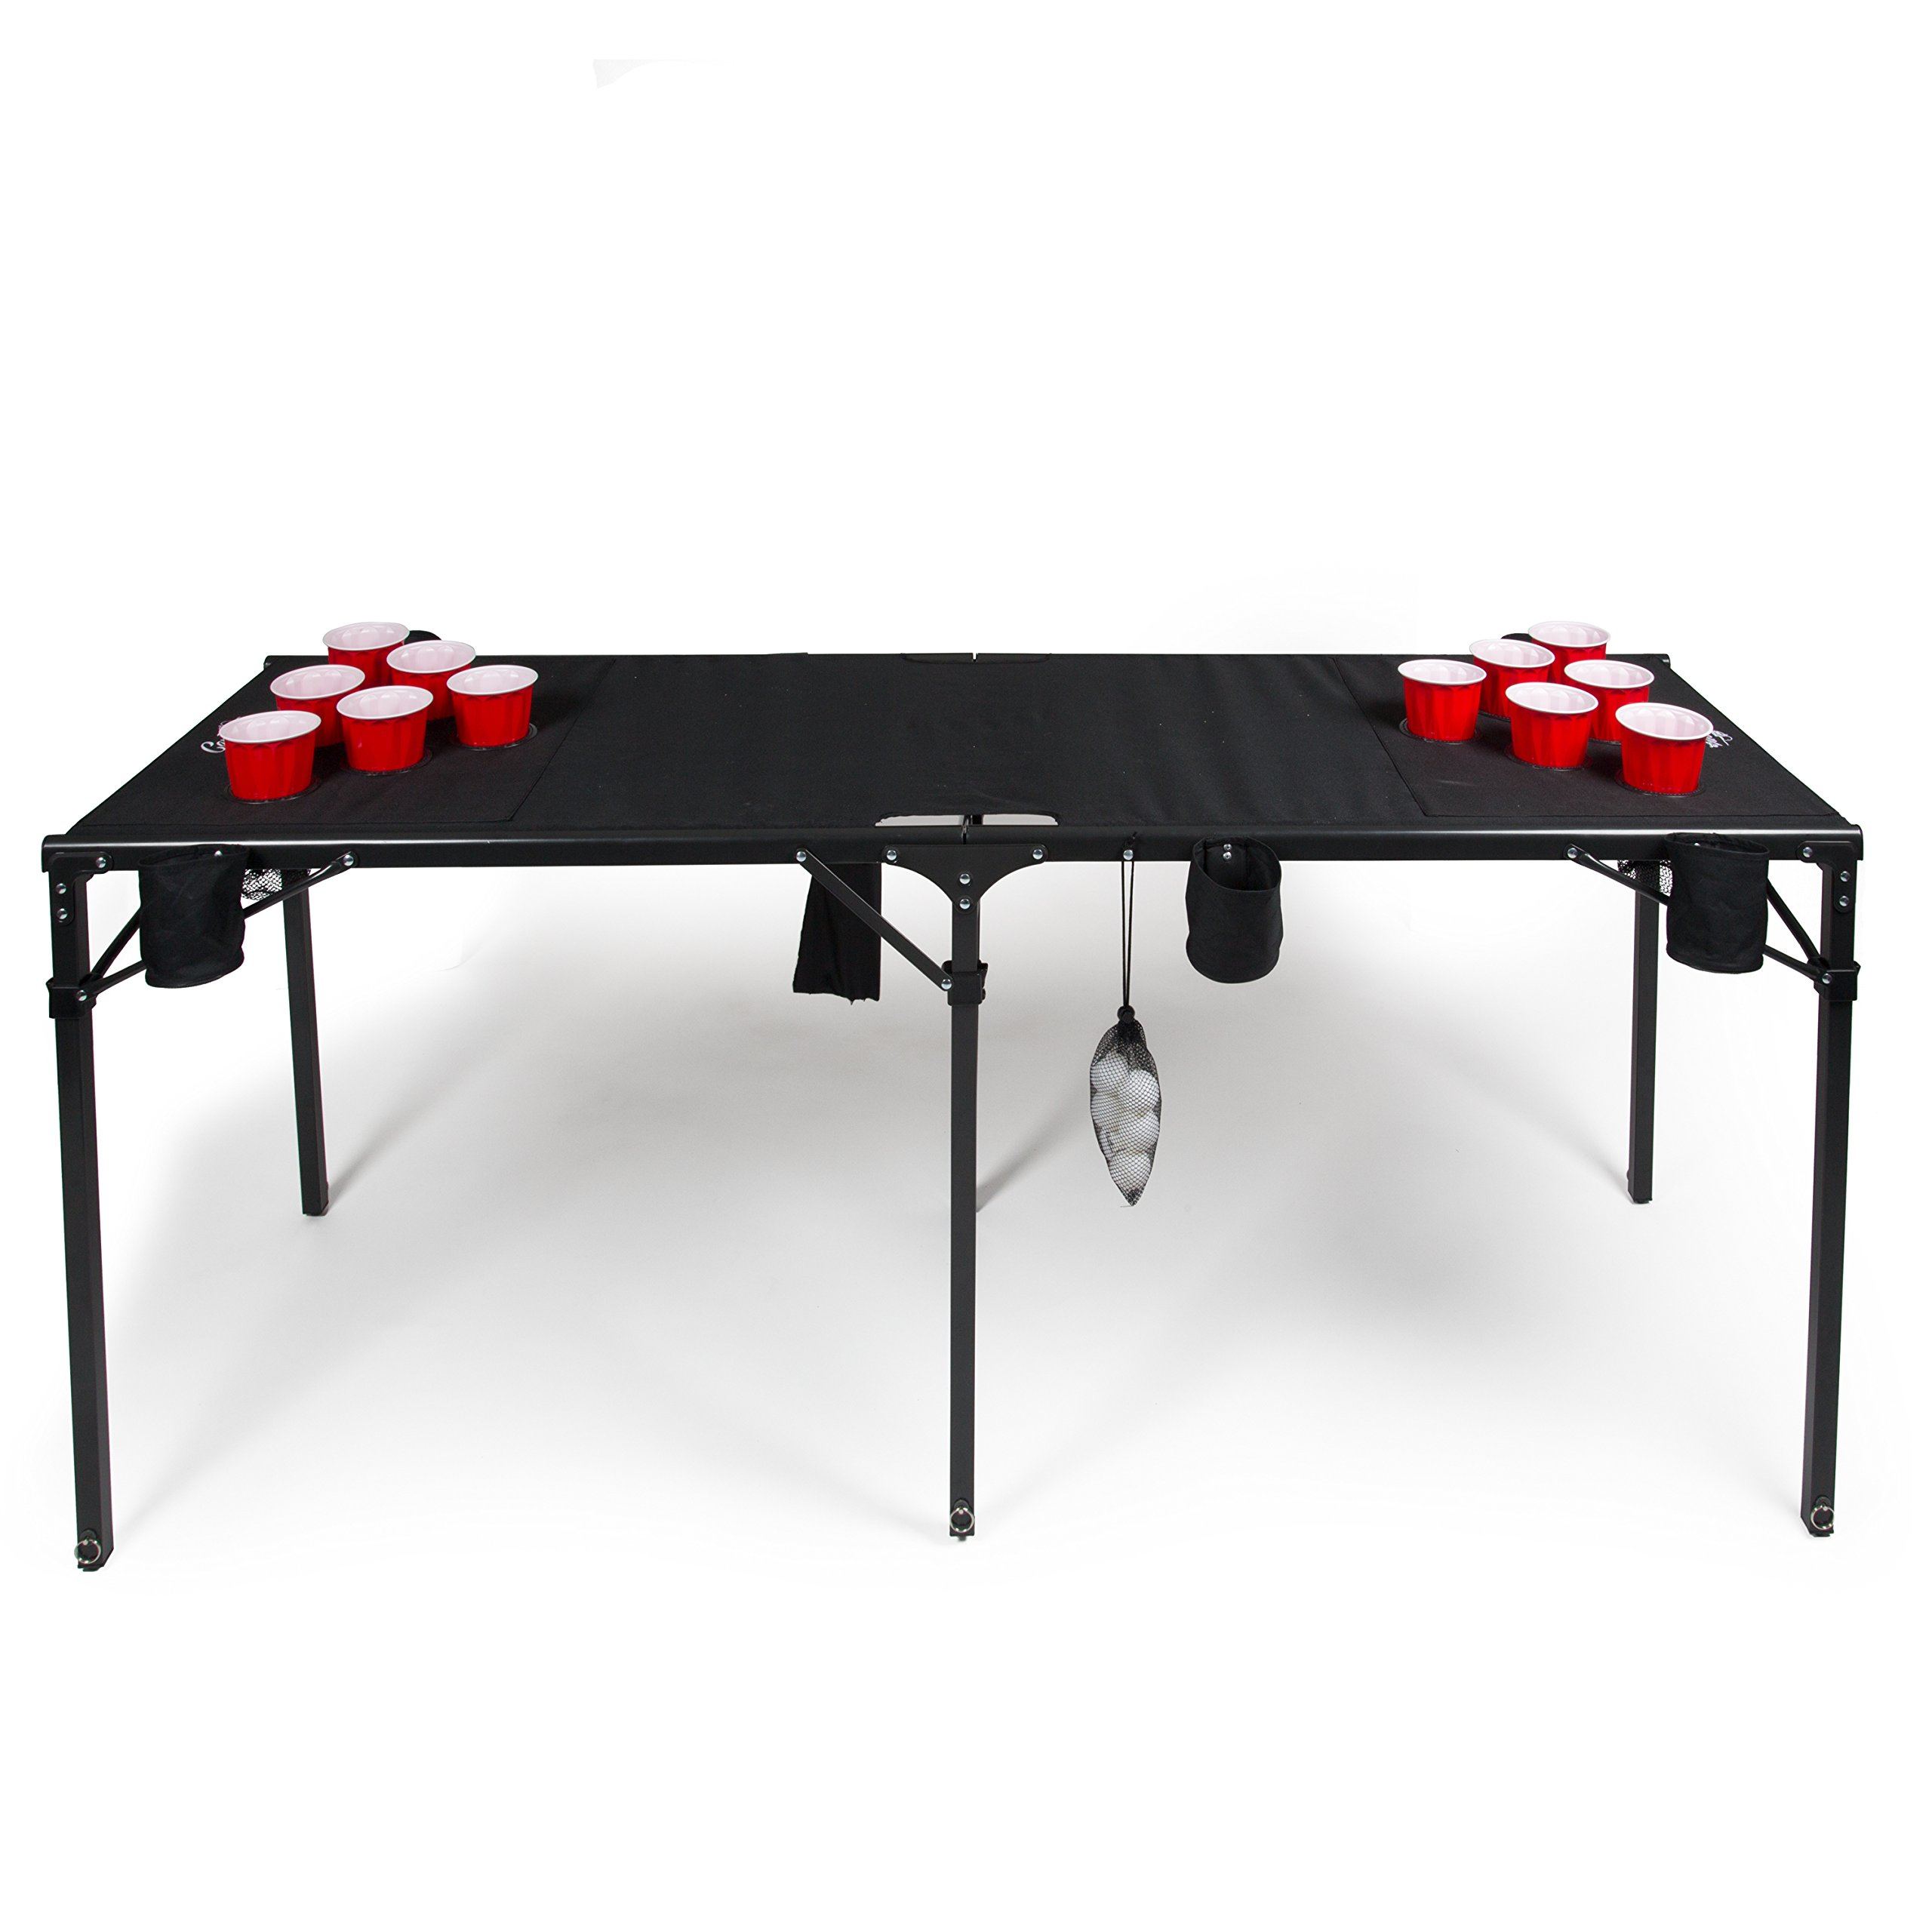 Camerons Portable Beer Pong Table- Collapsible Regulation Size Beirut Table w Cup Holders, 6 Balls, Stakes and Travel Bag by Camerons (Image #2)